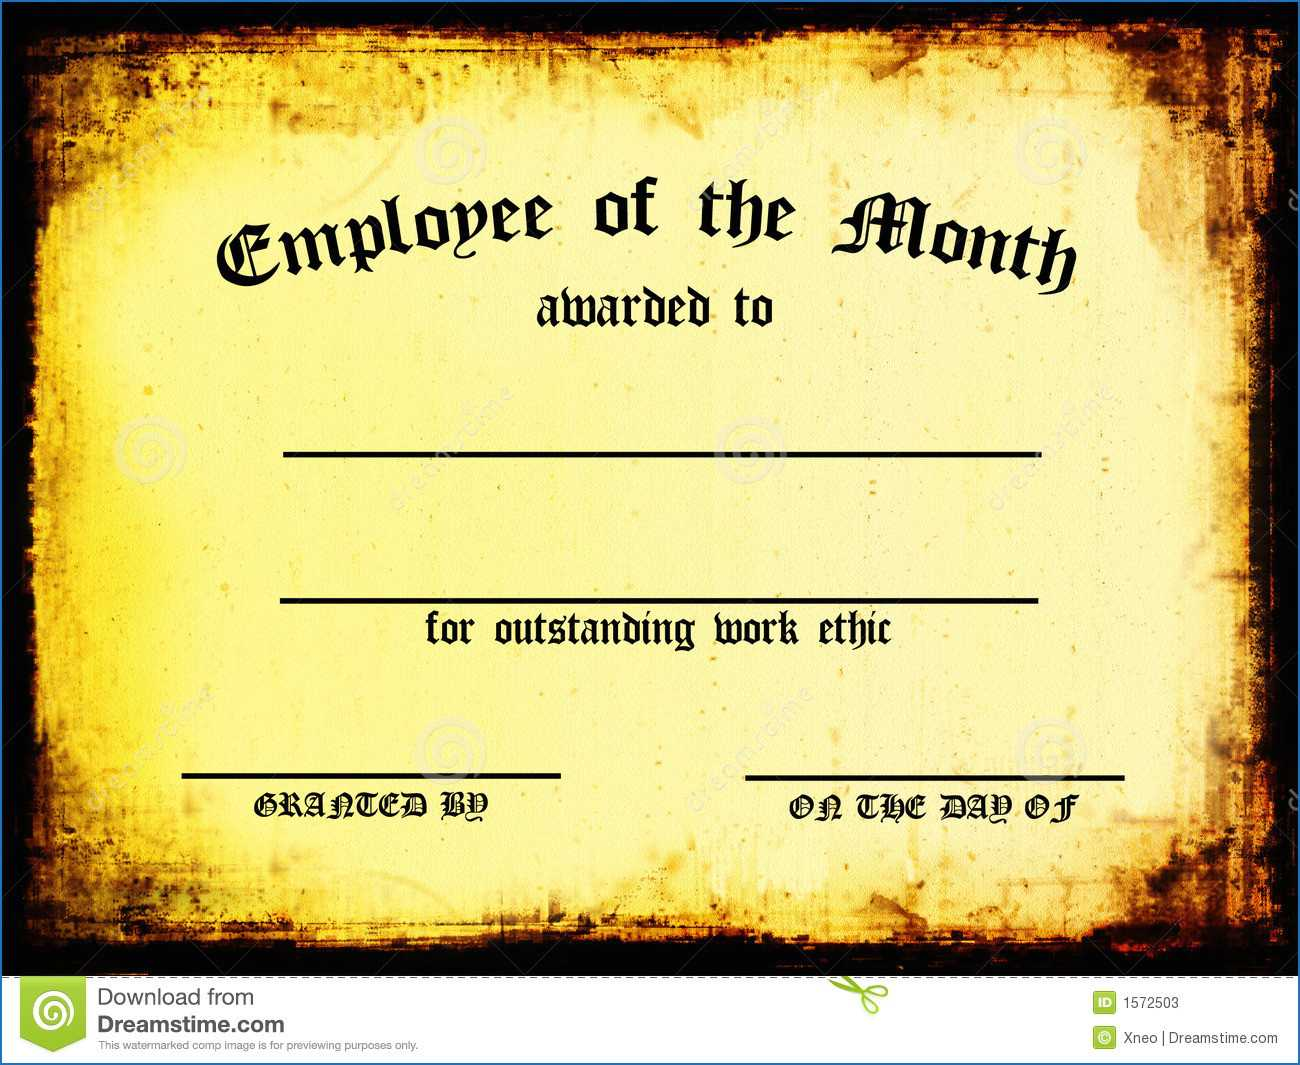 Manager Of The Month Certificate Template - Karan.ald2014 With Regard To Manager Of The Month Certificate Template